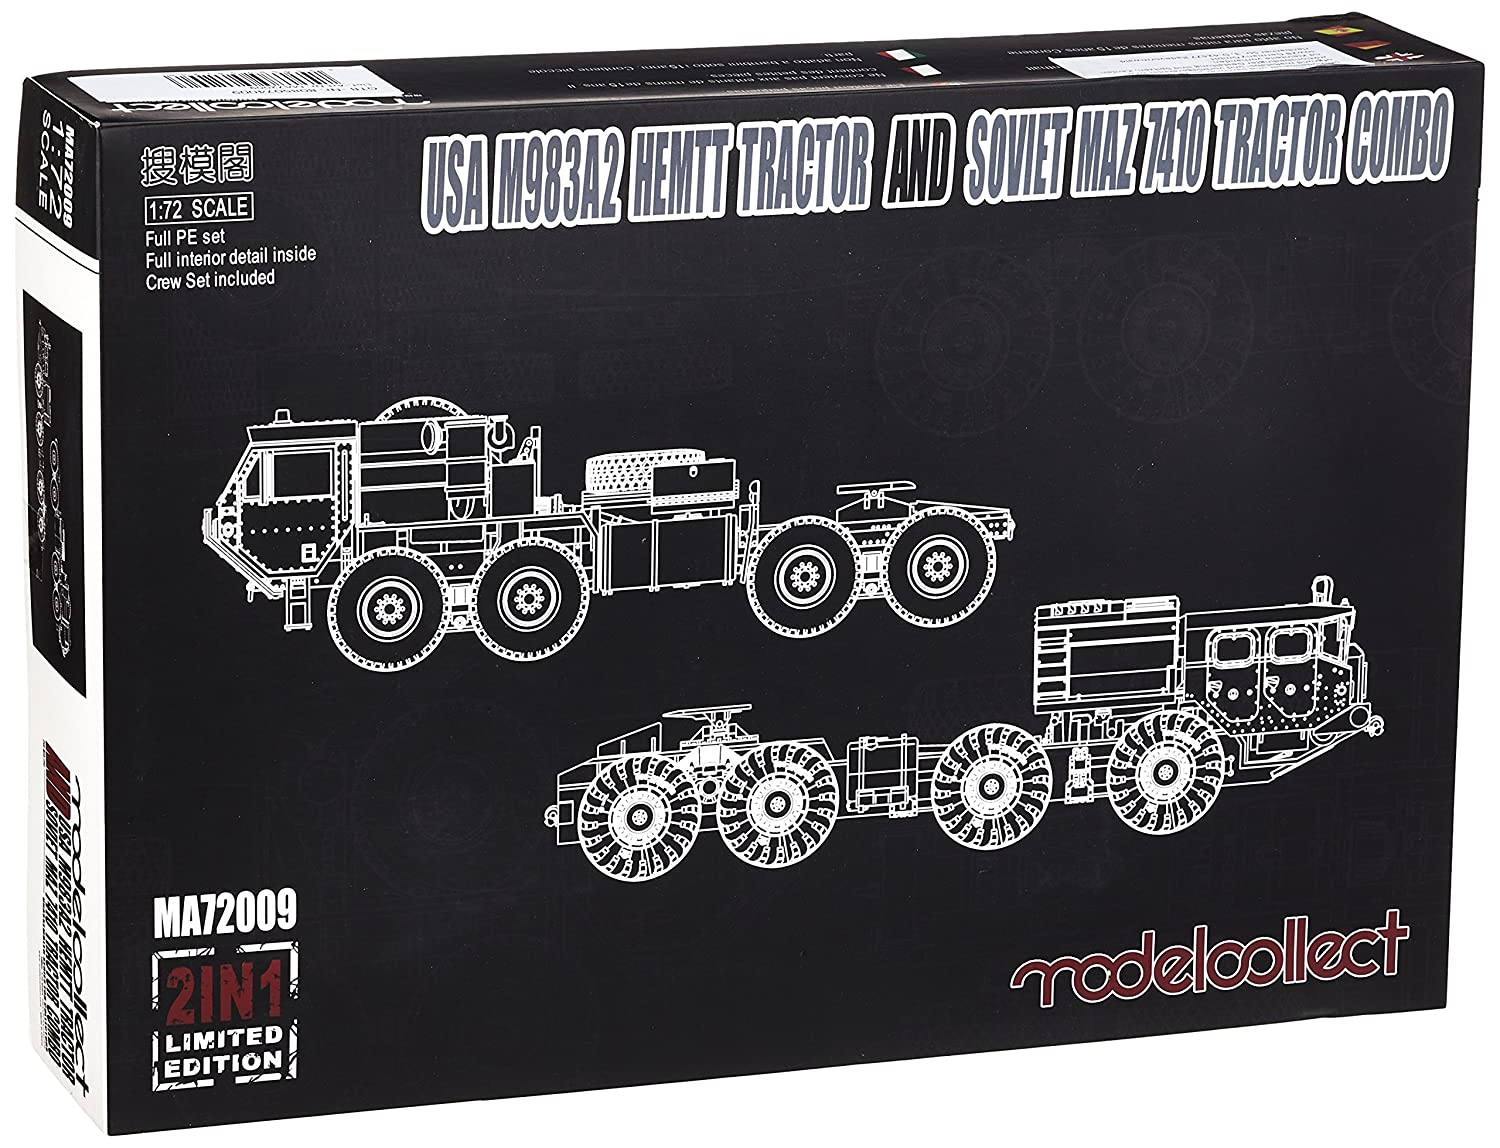 Modelcollect MA72009 Modellbausatz USA M983A2 HEMTT Tractor and Soviet MAZ 7410 tractorCOMBO,2in1,Limited Edition